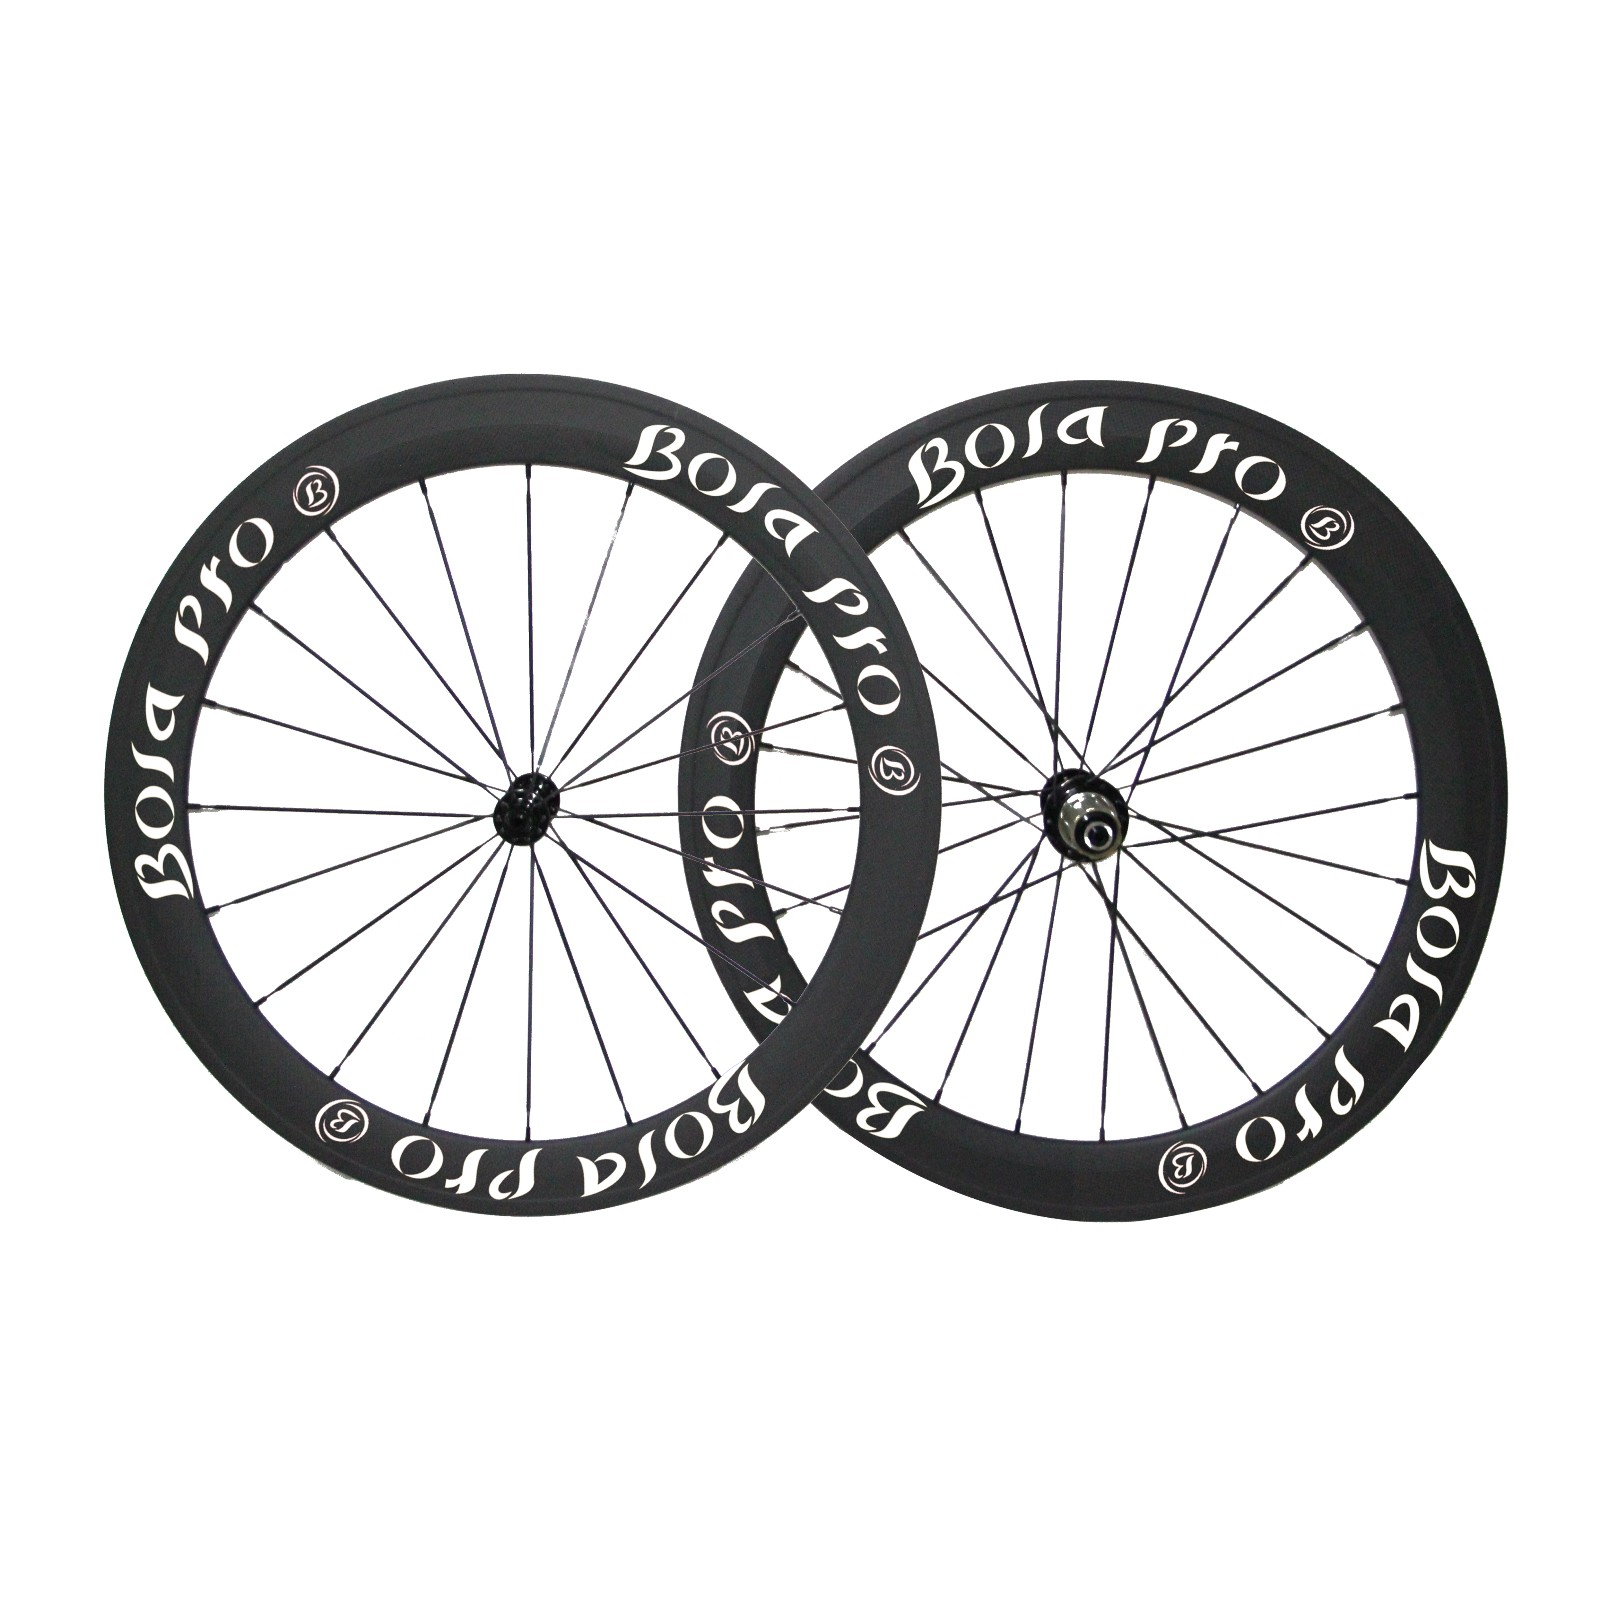 700C 50mm carbon wheelset with Dt240s